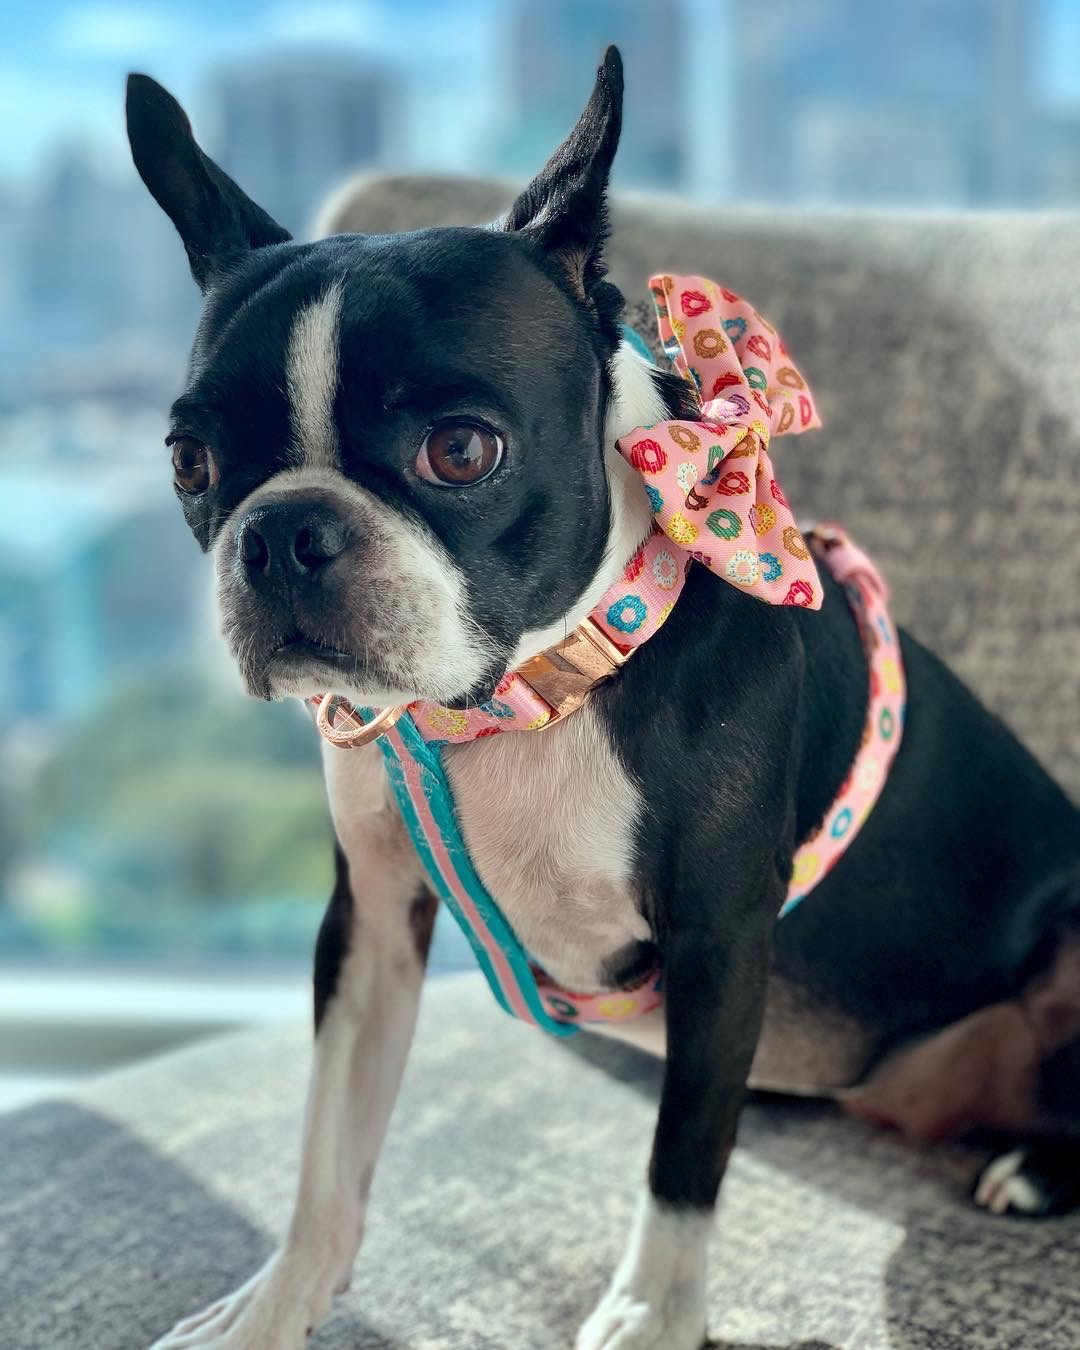 Boston Terrier dog breed harness